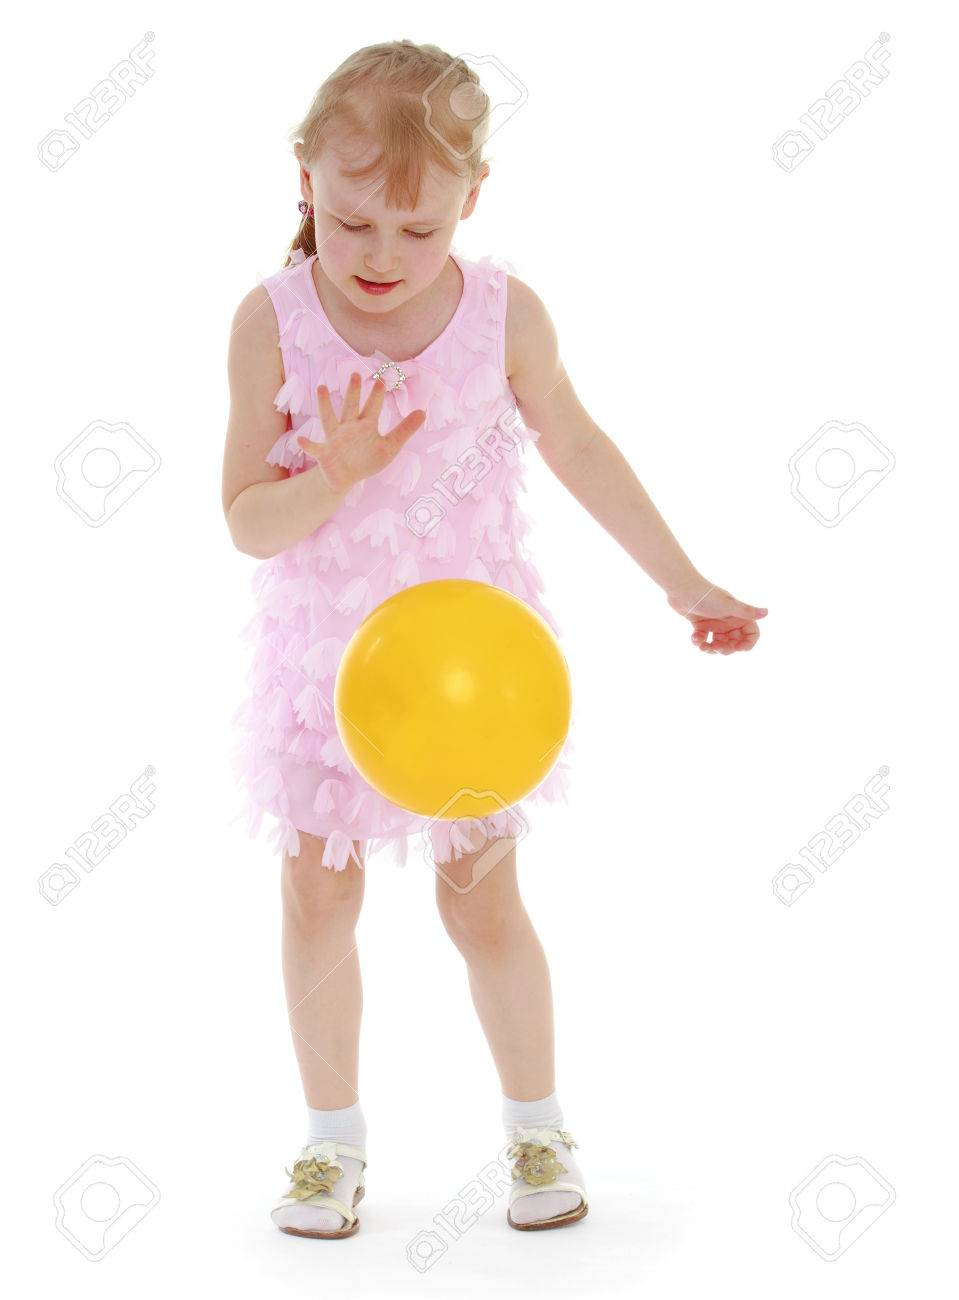 ilittle girl tosses the ballsolated on white background, sports life,happiness concept,happy childhood,carefree childhood,active lifestyle - 29730684